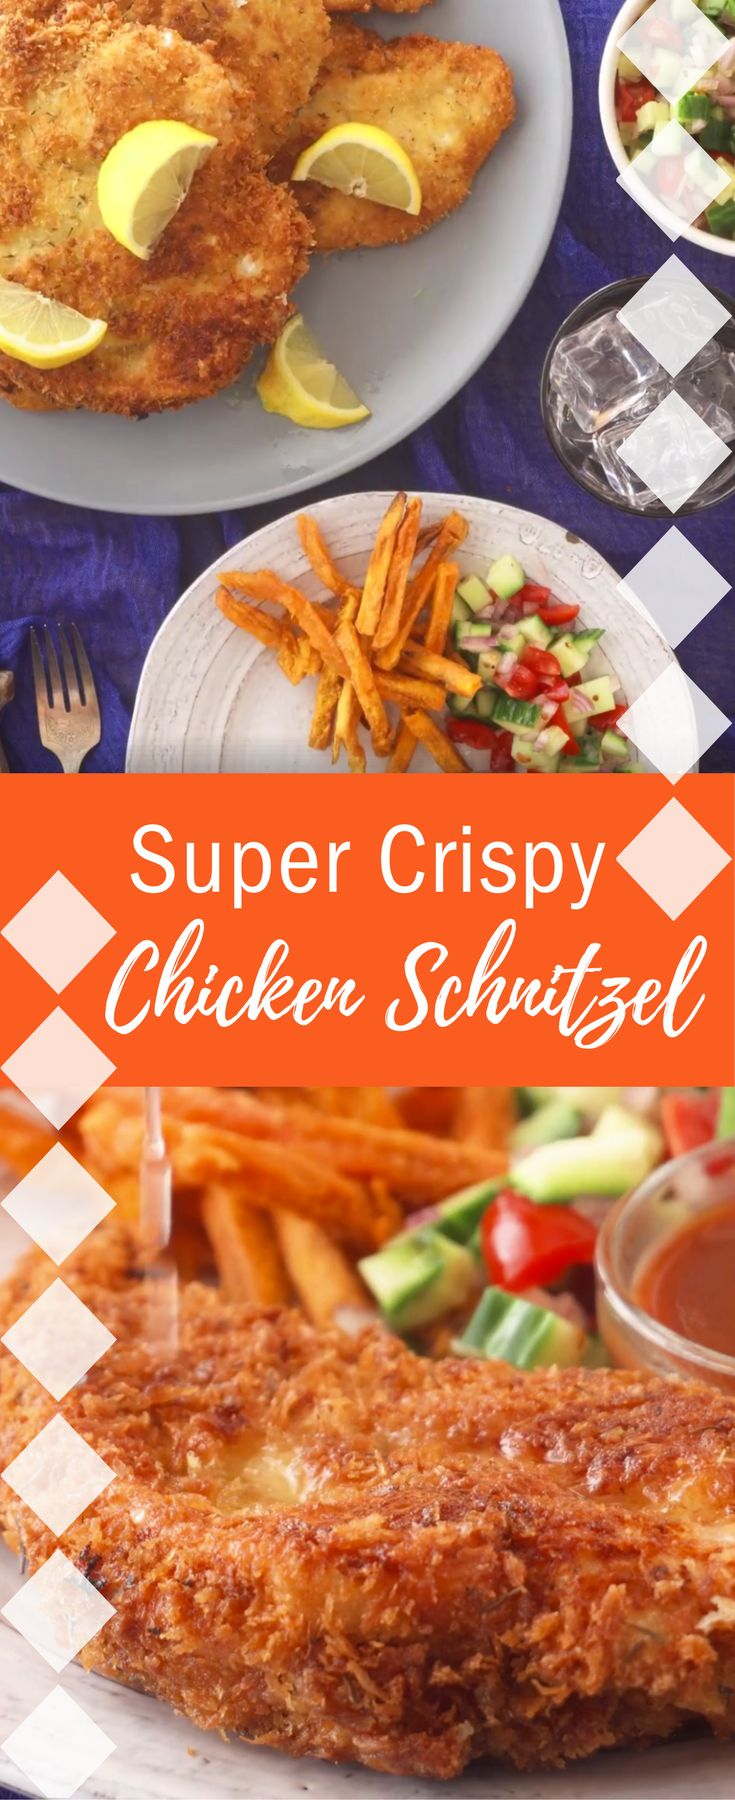 Check out this Super Crispy Chicken Schnitzel recipe! Leftovers make great sandwiches on rolls or stuffed  into pita with hummus and salad. Get the kids involved by letting them  help with the dipping and coating.